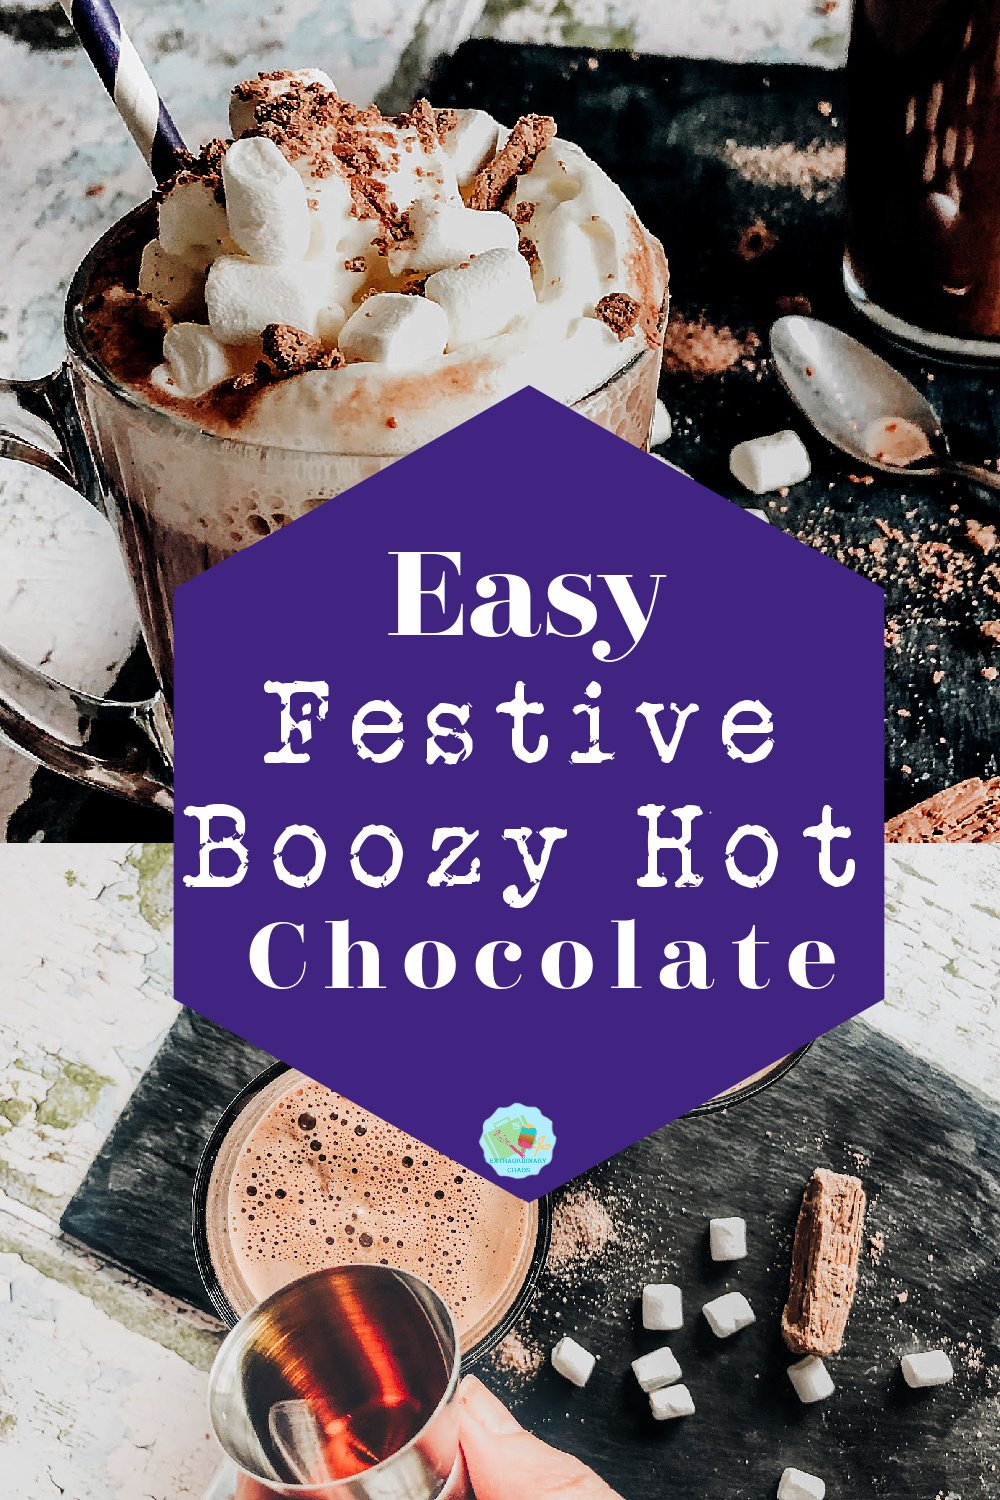 Easy bourbon boozy hot chocolate recipe for festive cozy nights by the fire with a hot alcoholic hot chocolate drinks with crushed chocolate